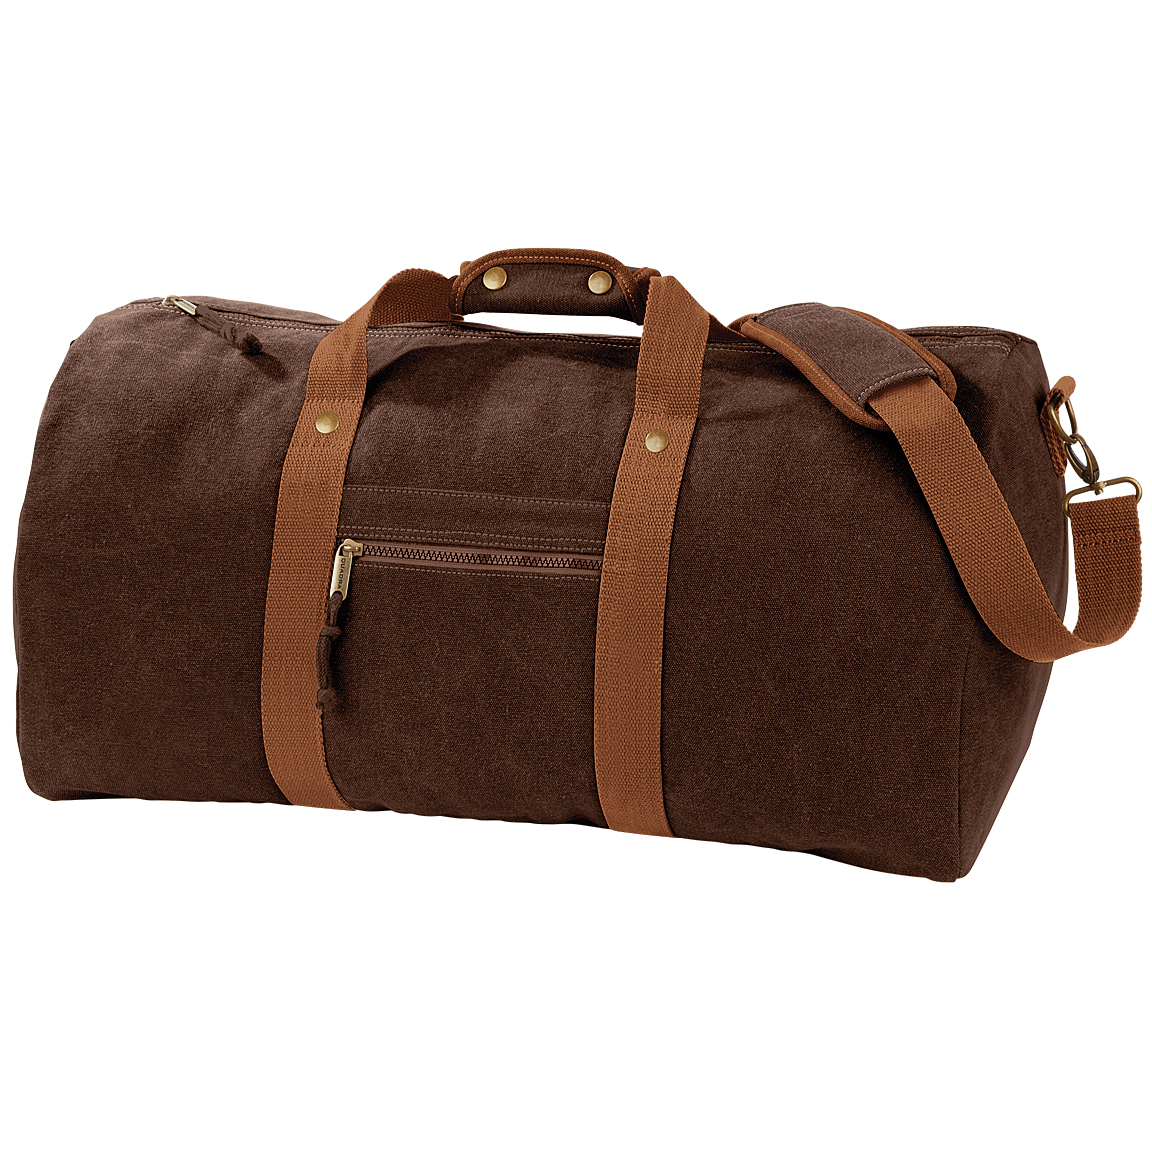 Quadra Vintage Canvas Holdall Duffle Bag - 45 Litres (Pack of 2) (One Size) (Sahara)